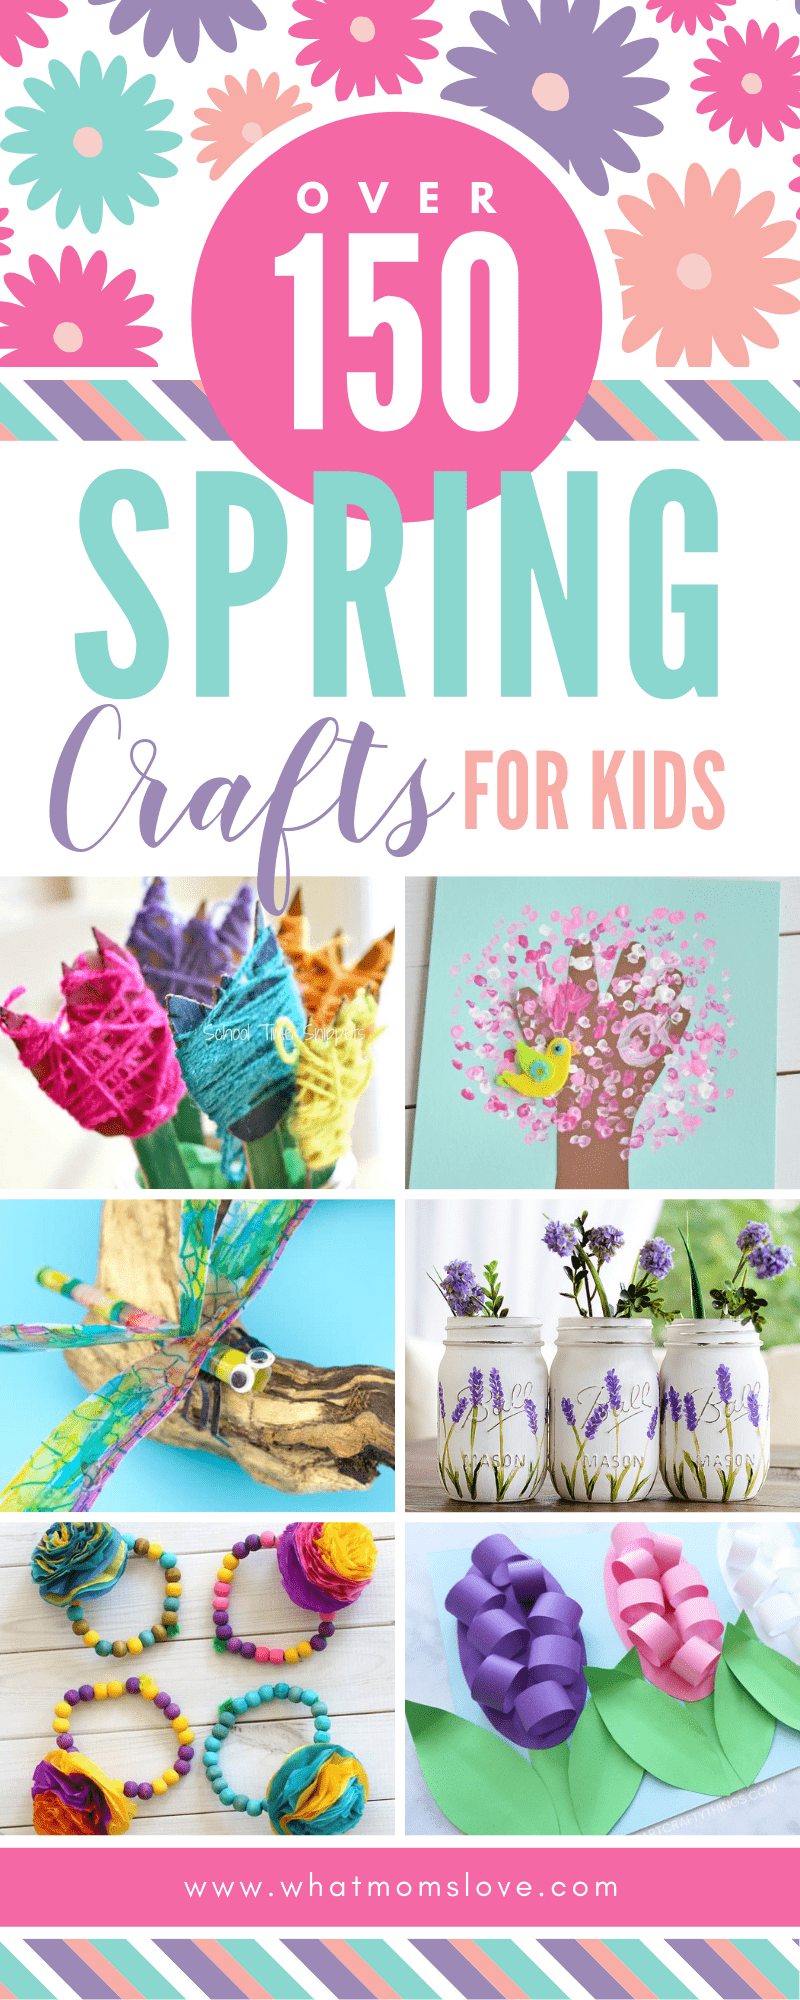 The Epic Collection Of Spring Crafts For Kids All The Best Art